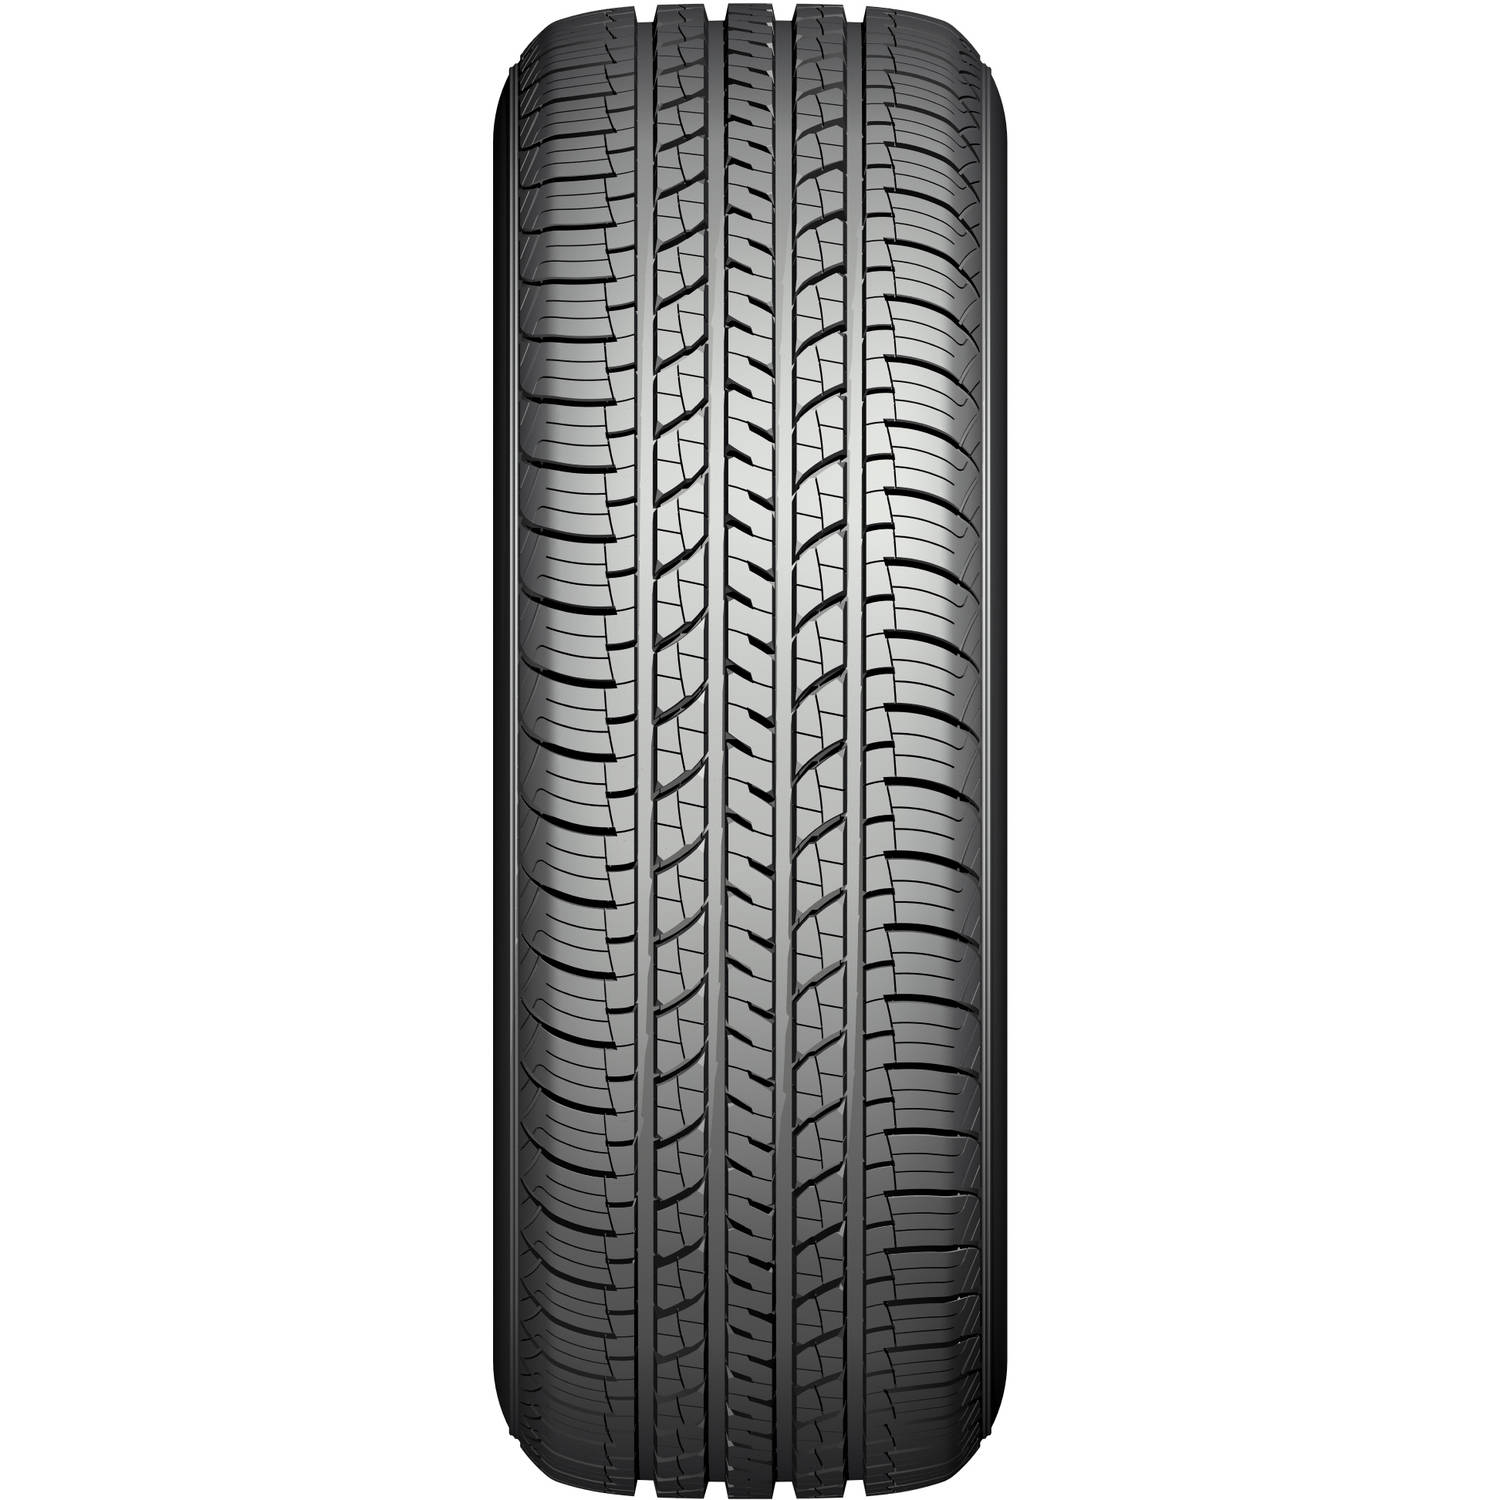 Douglas All Season Tire 225 60r16 98t Sl Walmart Com